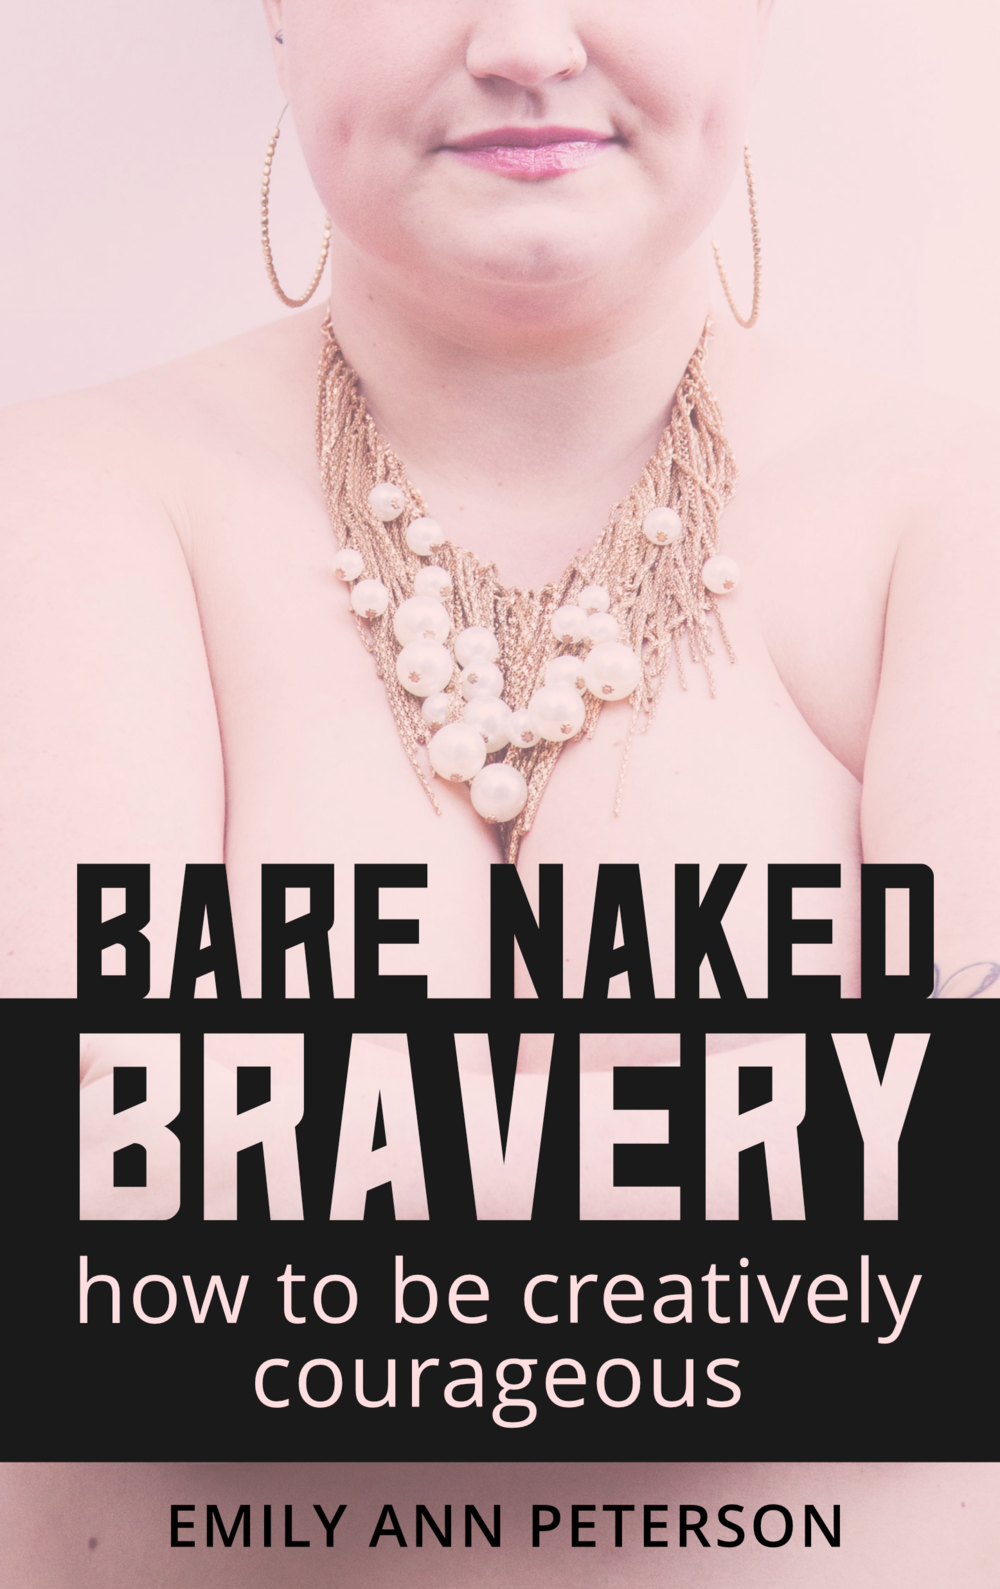 The Brave Files. Learn how to live bravely. Click through to listen how to Emily Ann Peterson is living courageously as an artist and musician. Bare Naked Bravery.